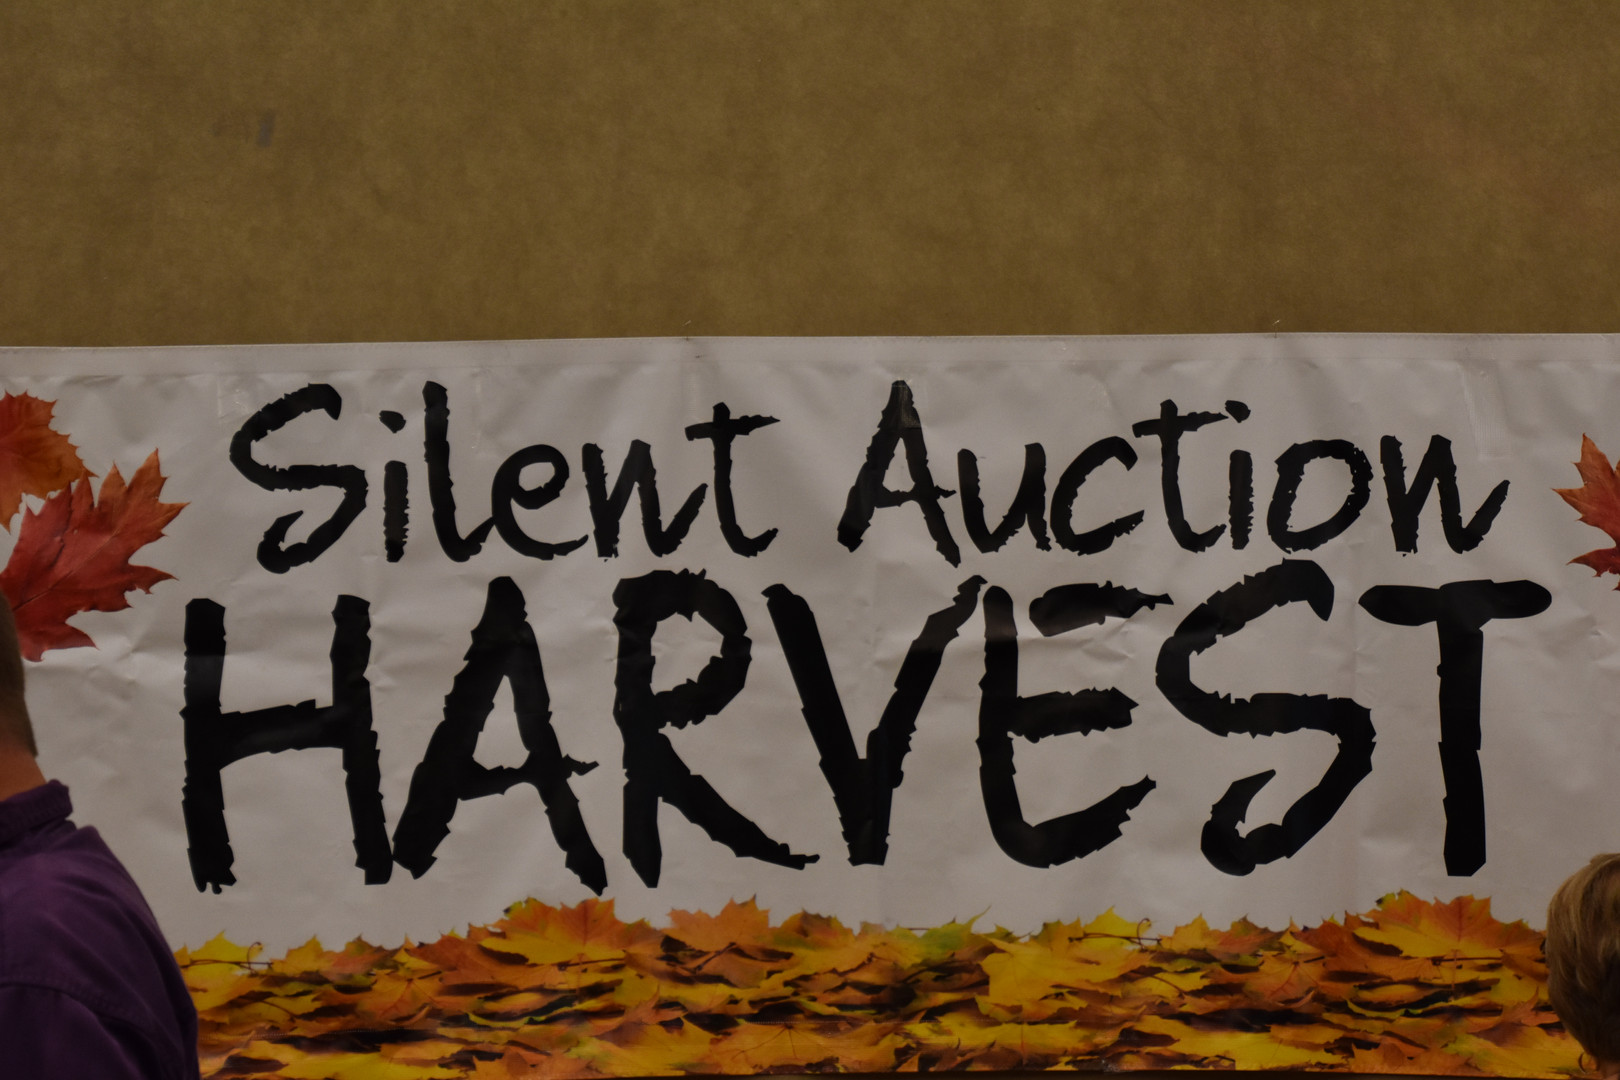 Over 100 auction items to bid on!